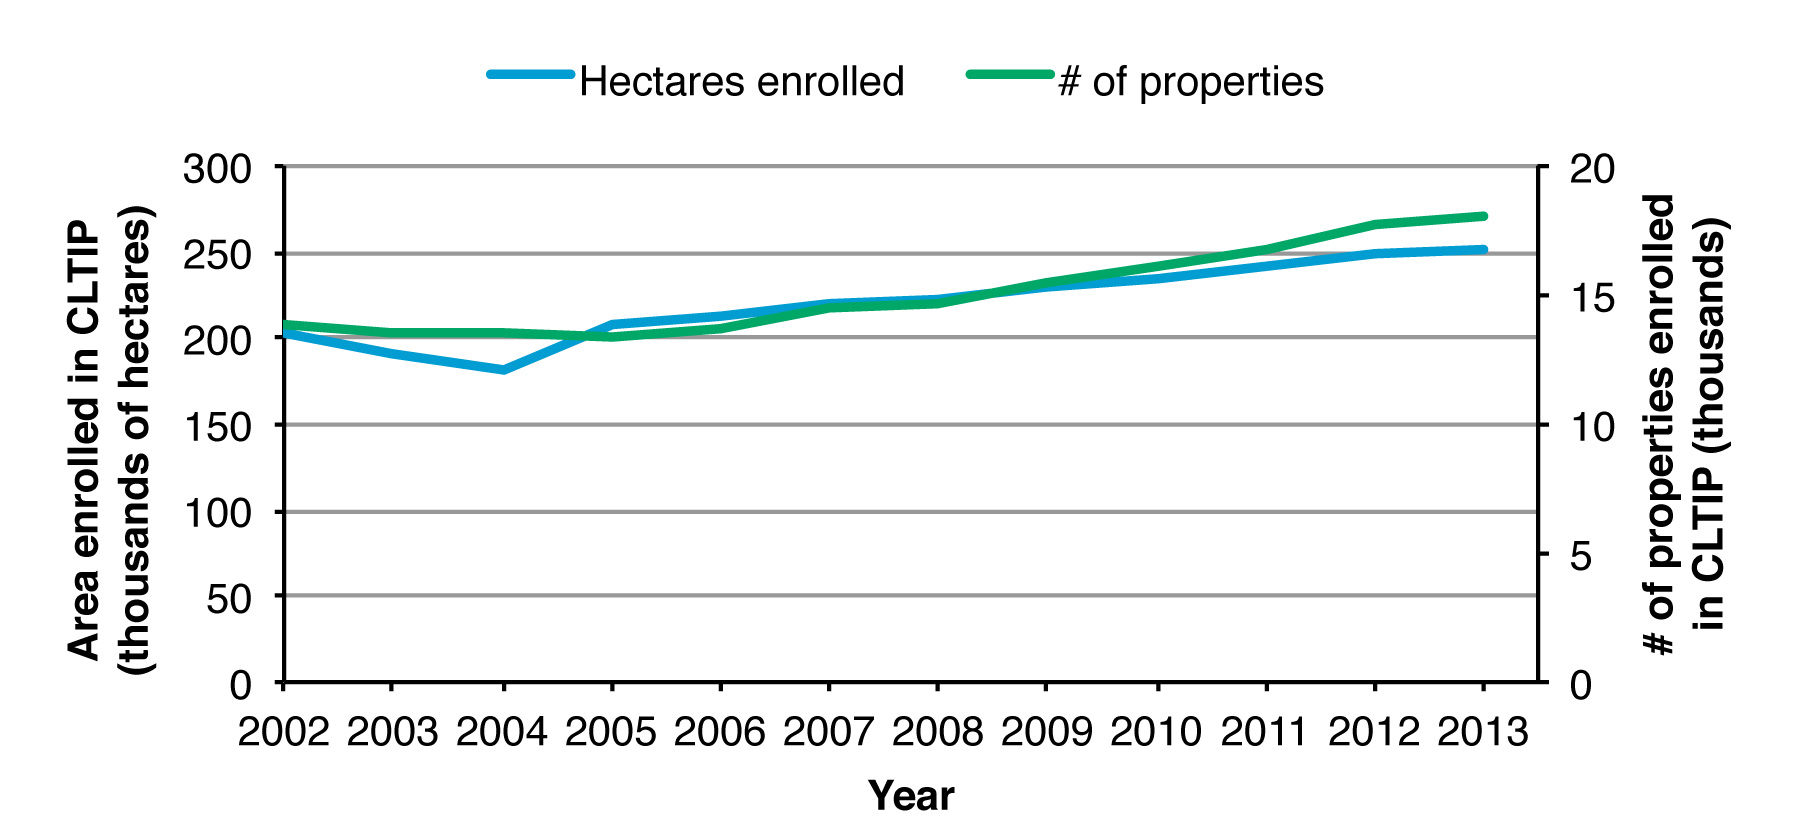 Figure 2. Land area and participation in the Conservation Land Tax Incentive Program 2002-2013.